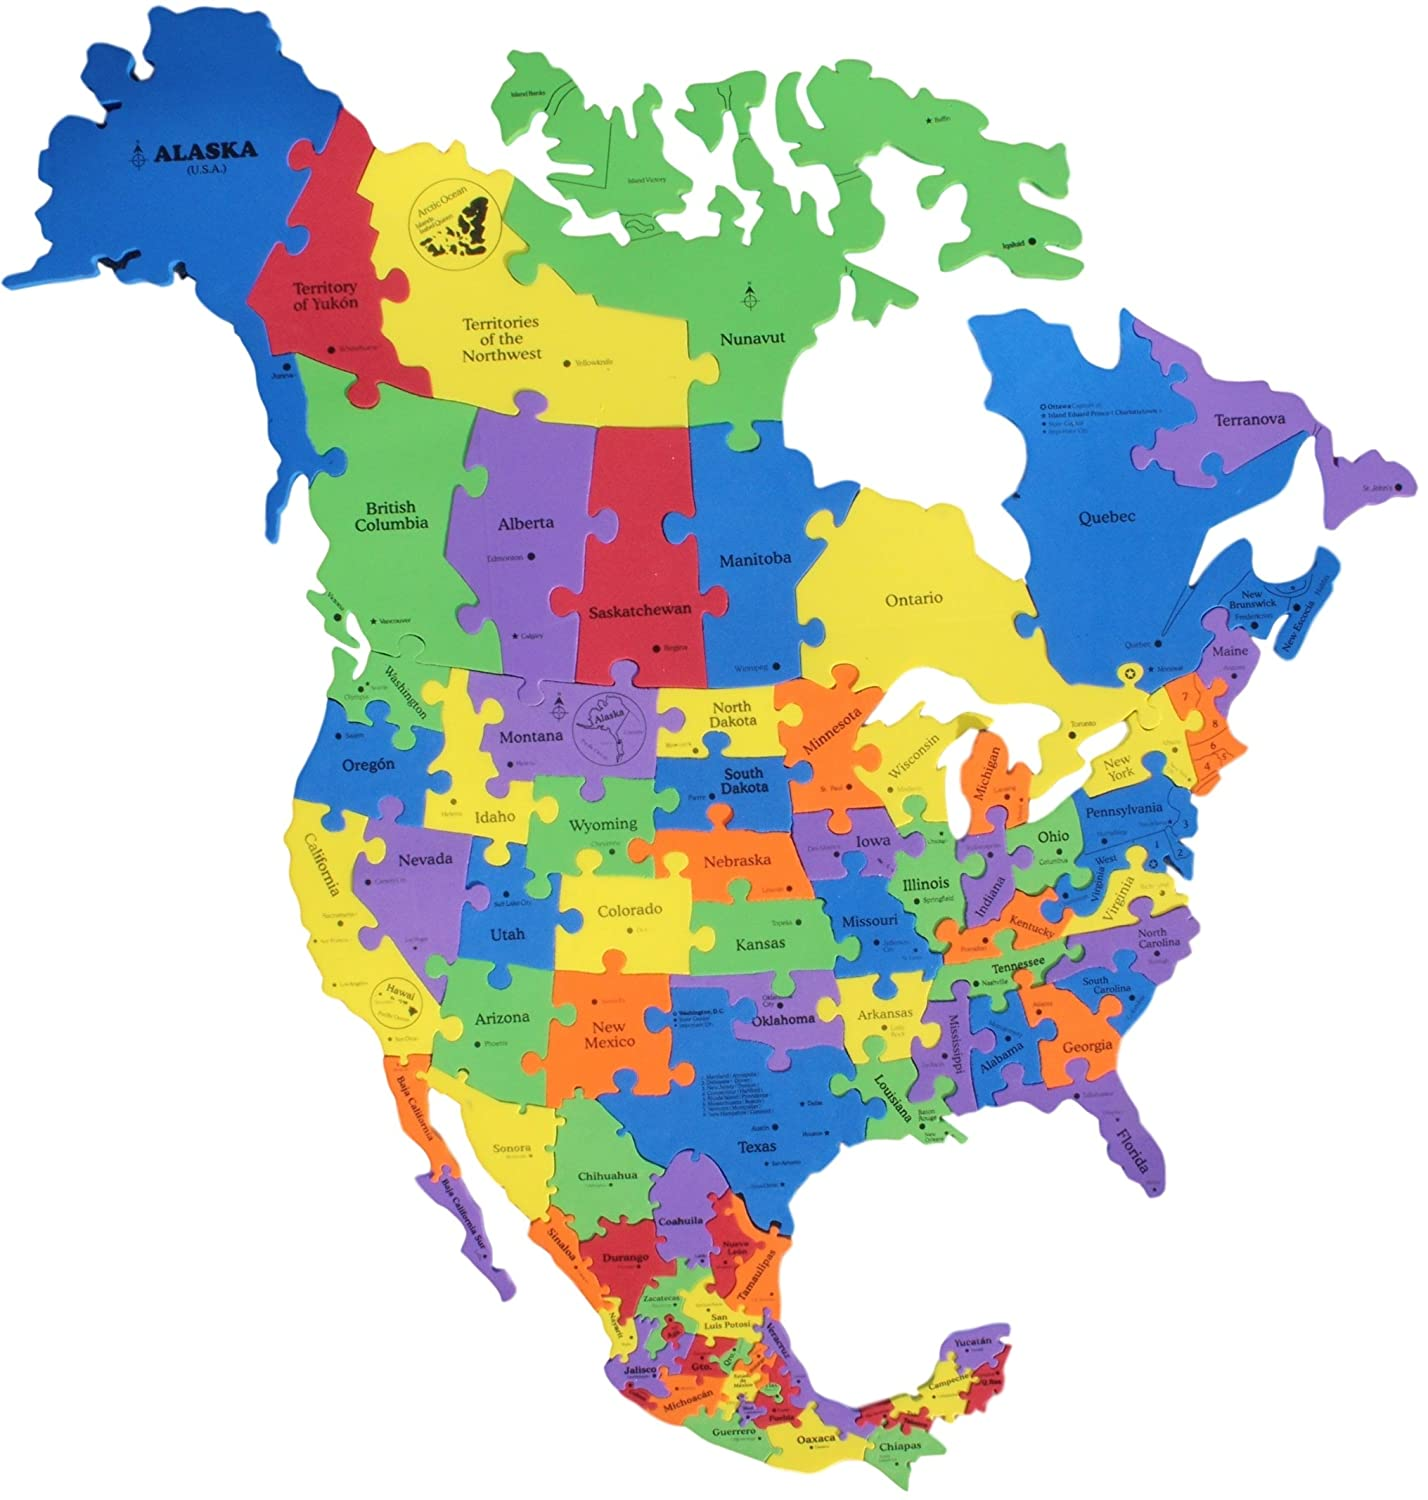 Amazoncom Super Sized North America Foam Map Puzzle X - Map of canada and usa